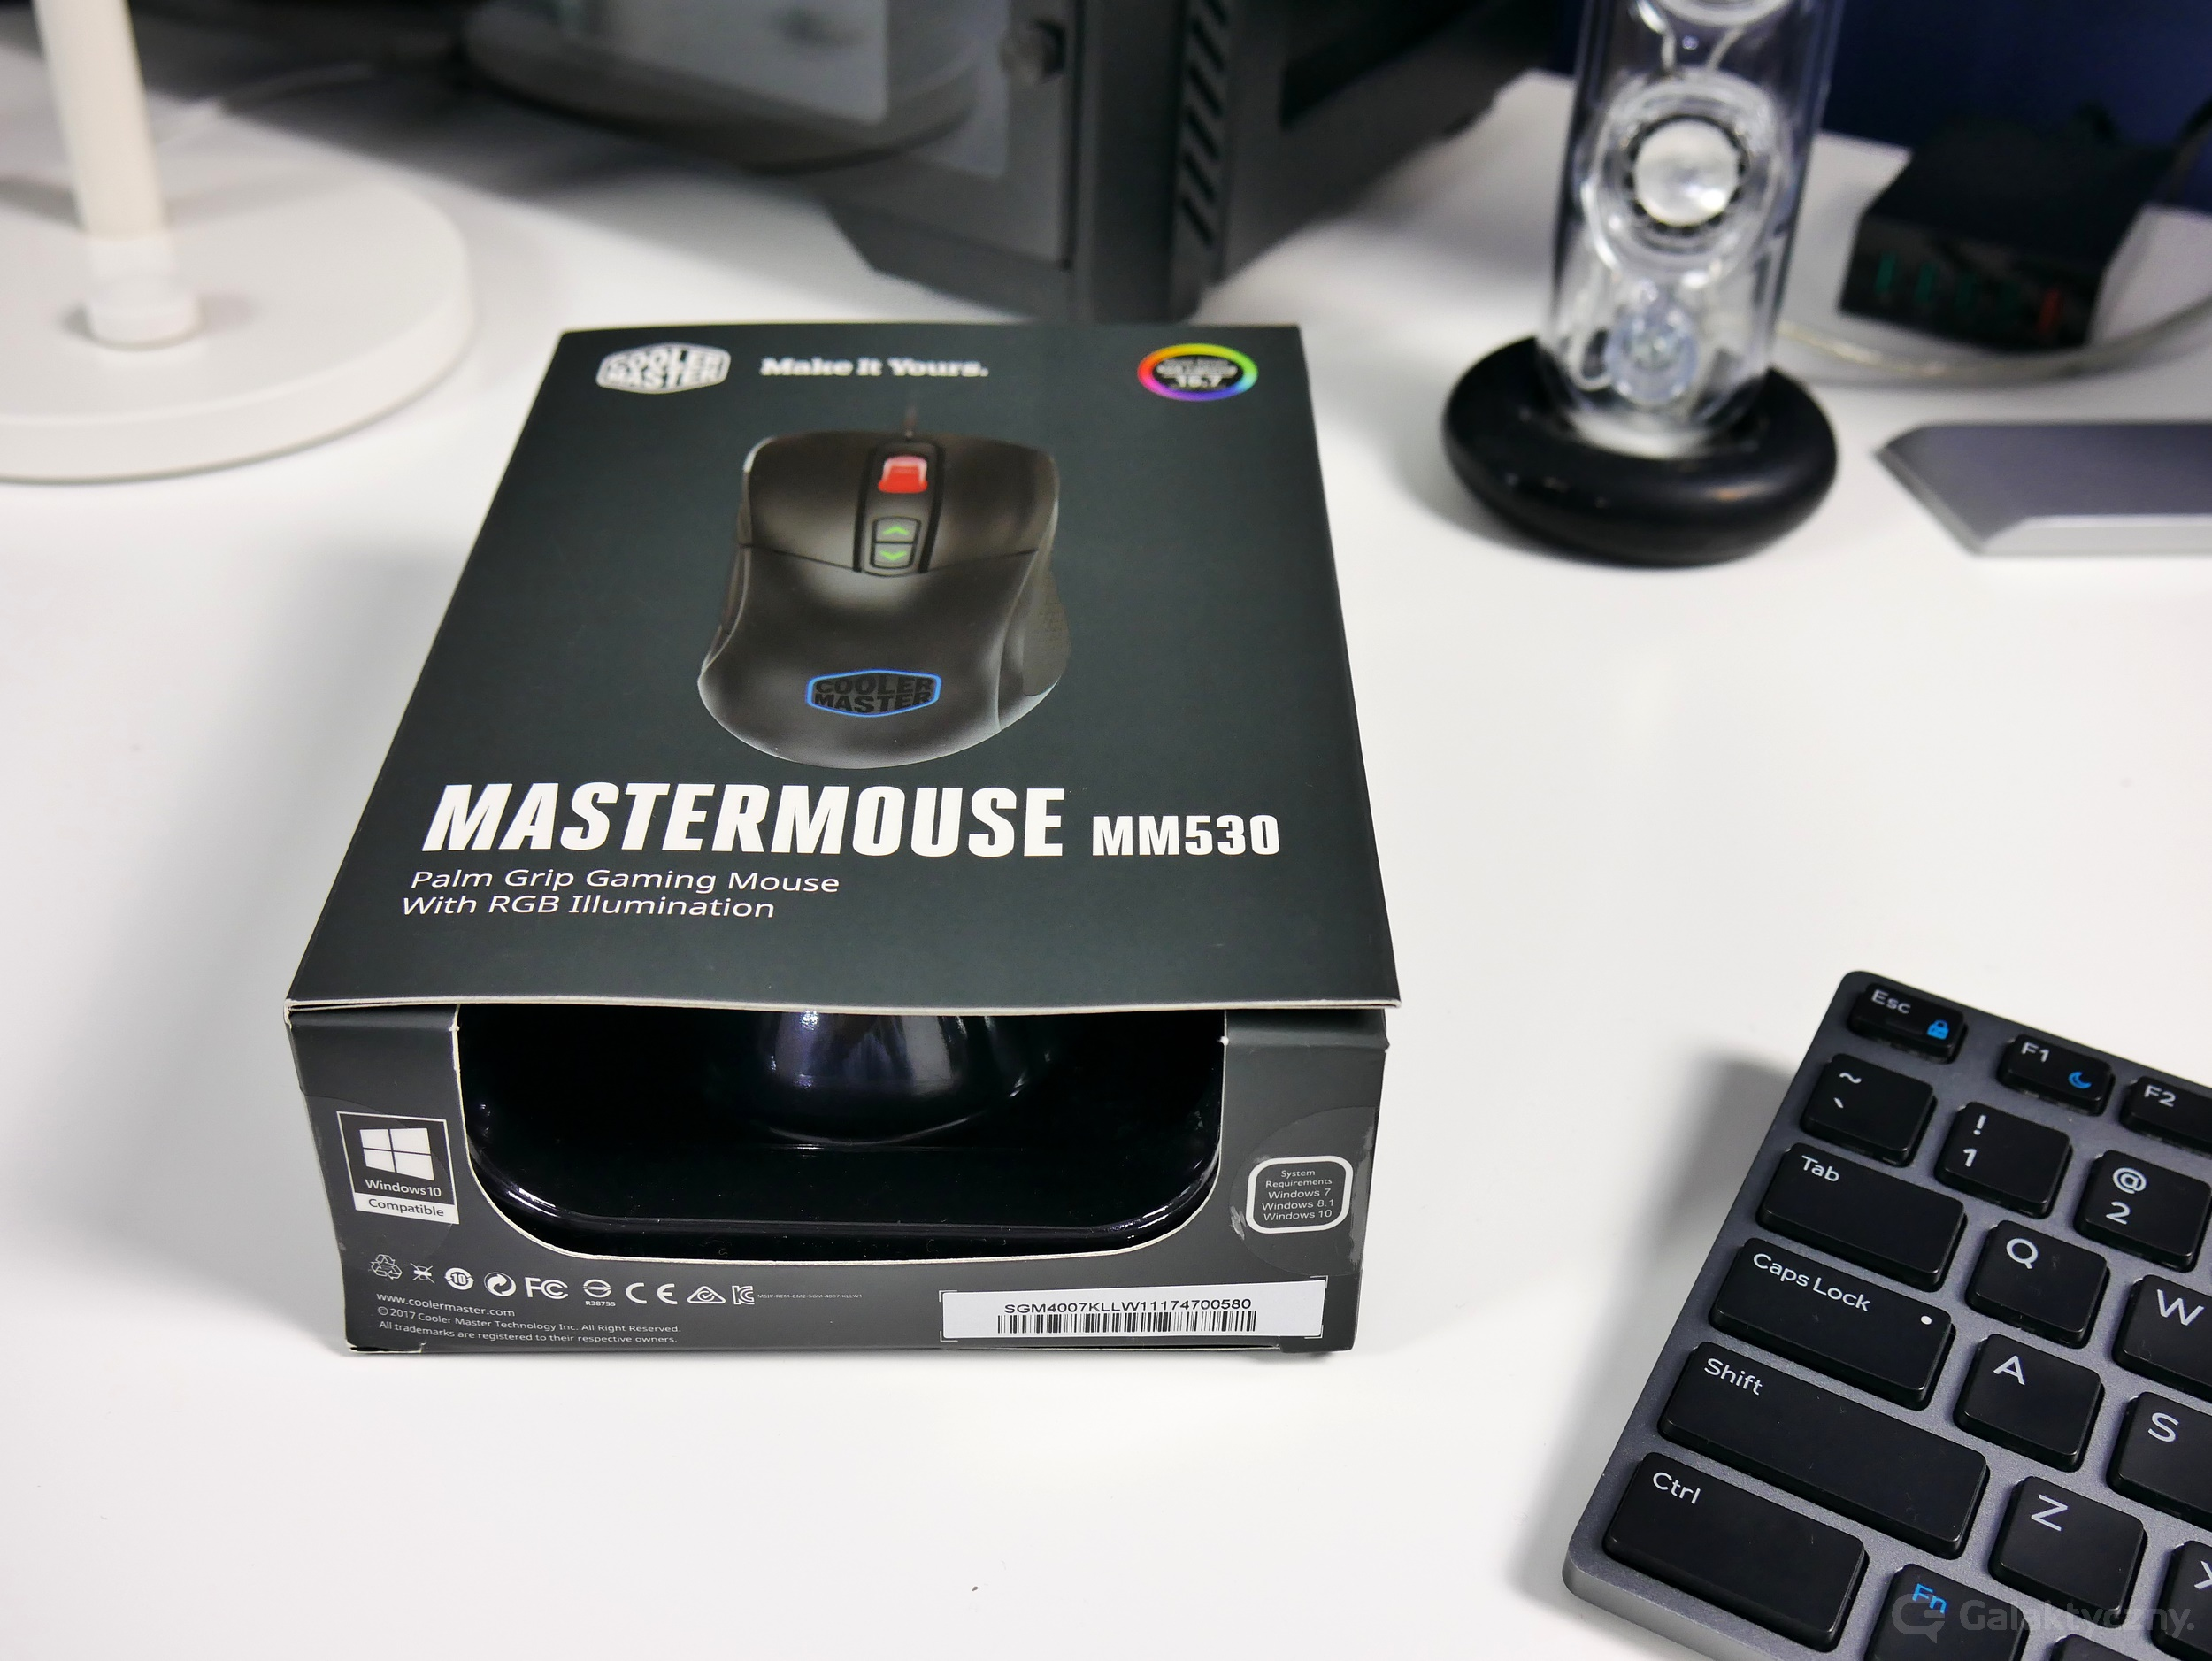 MasterMouse MM530